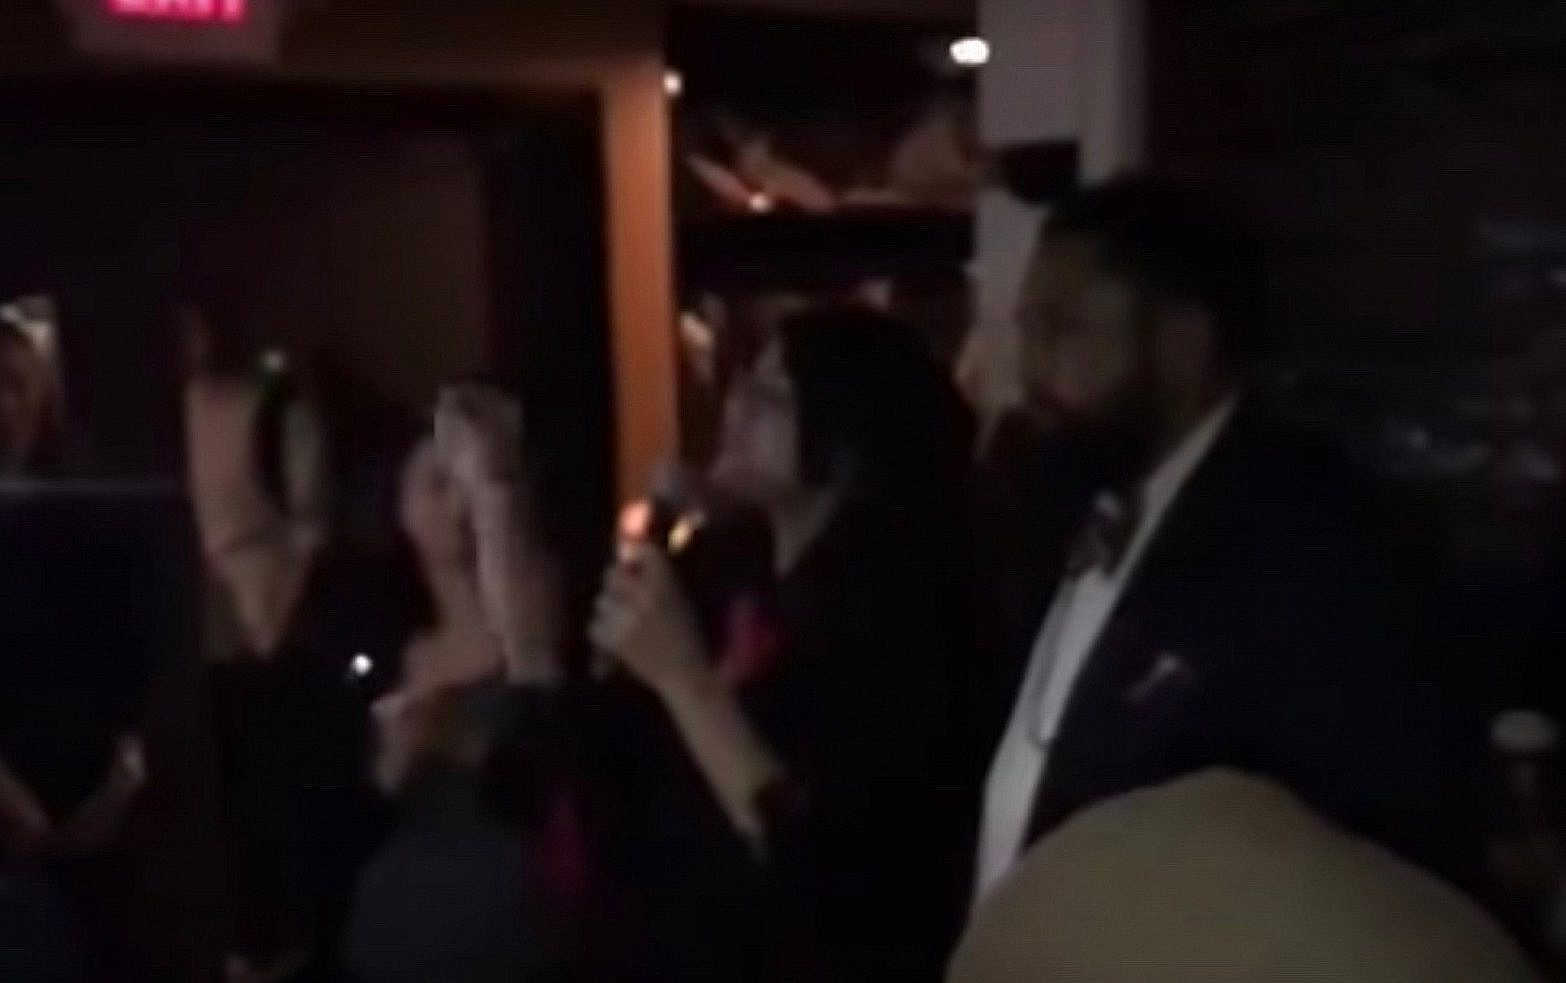 New Rep. Tells Cheering Crowd: 'We're Going To Impeach The Motherf*cker'